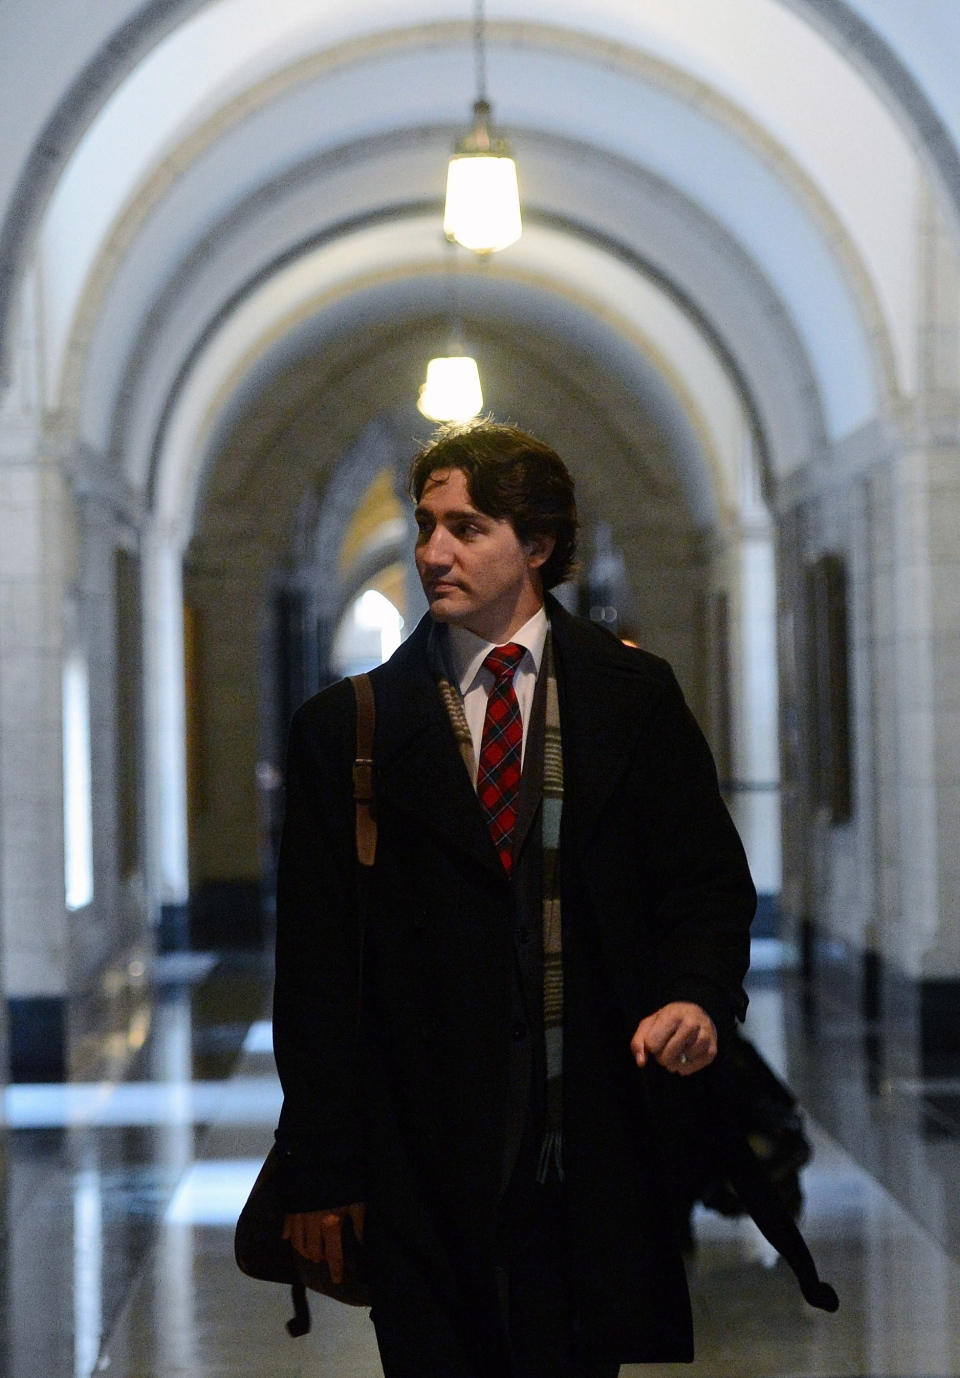 Newly elected Liberal leader Justin Trudeau arrives to Parliament Hill in Ottawa on Monday, April 15, 2013. (Sean Kilpatrick / THE CANADIAN PRESS)